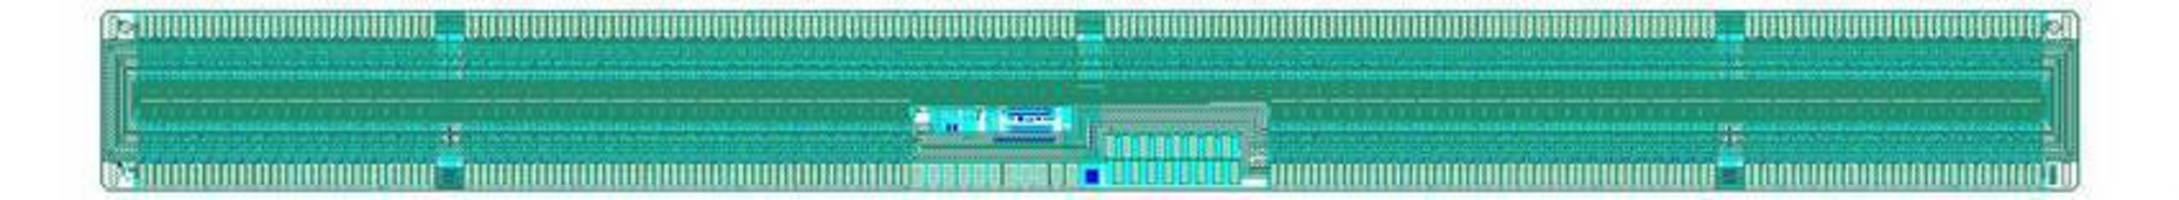 EPD Driver IC features 400 outputs rated for ±15 V.